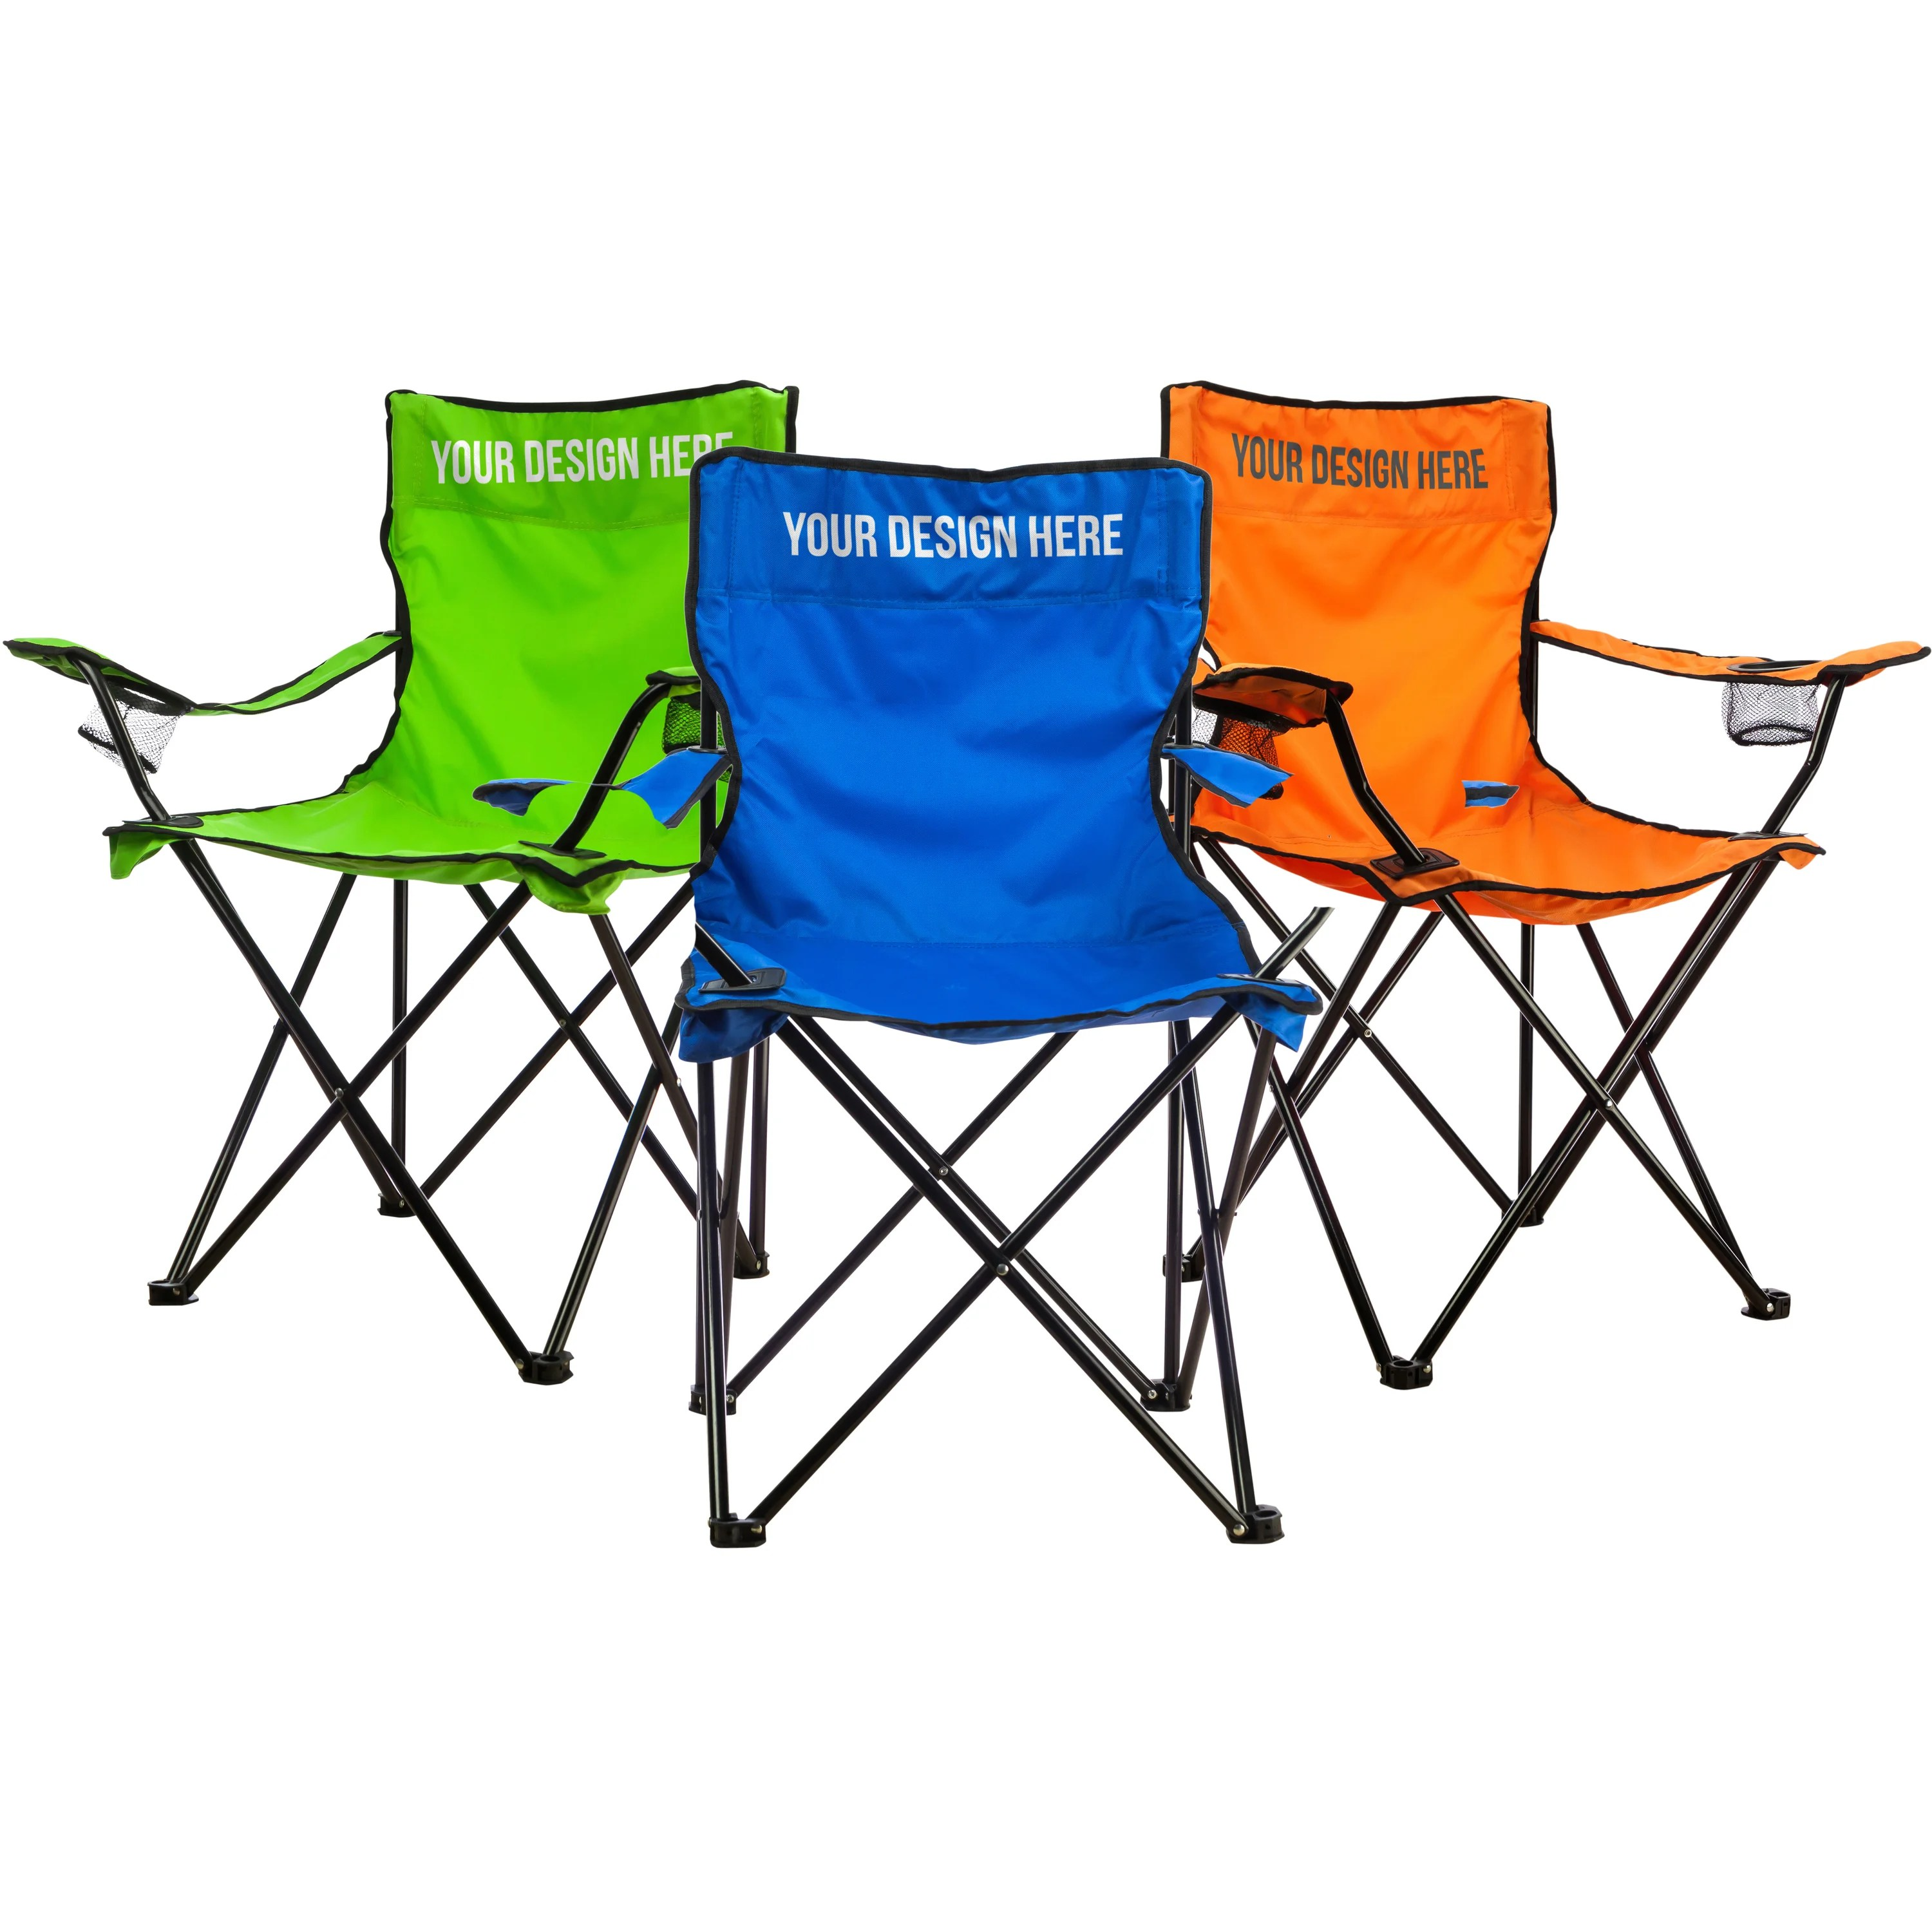 CLICK HERE to Order Folding Chair with Carrying Bags